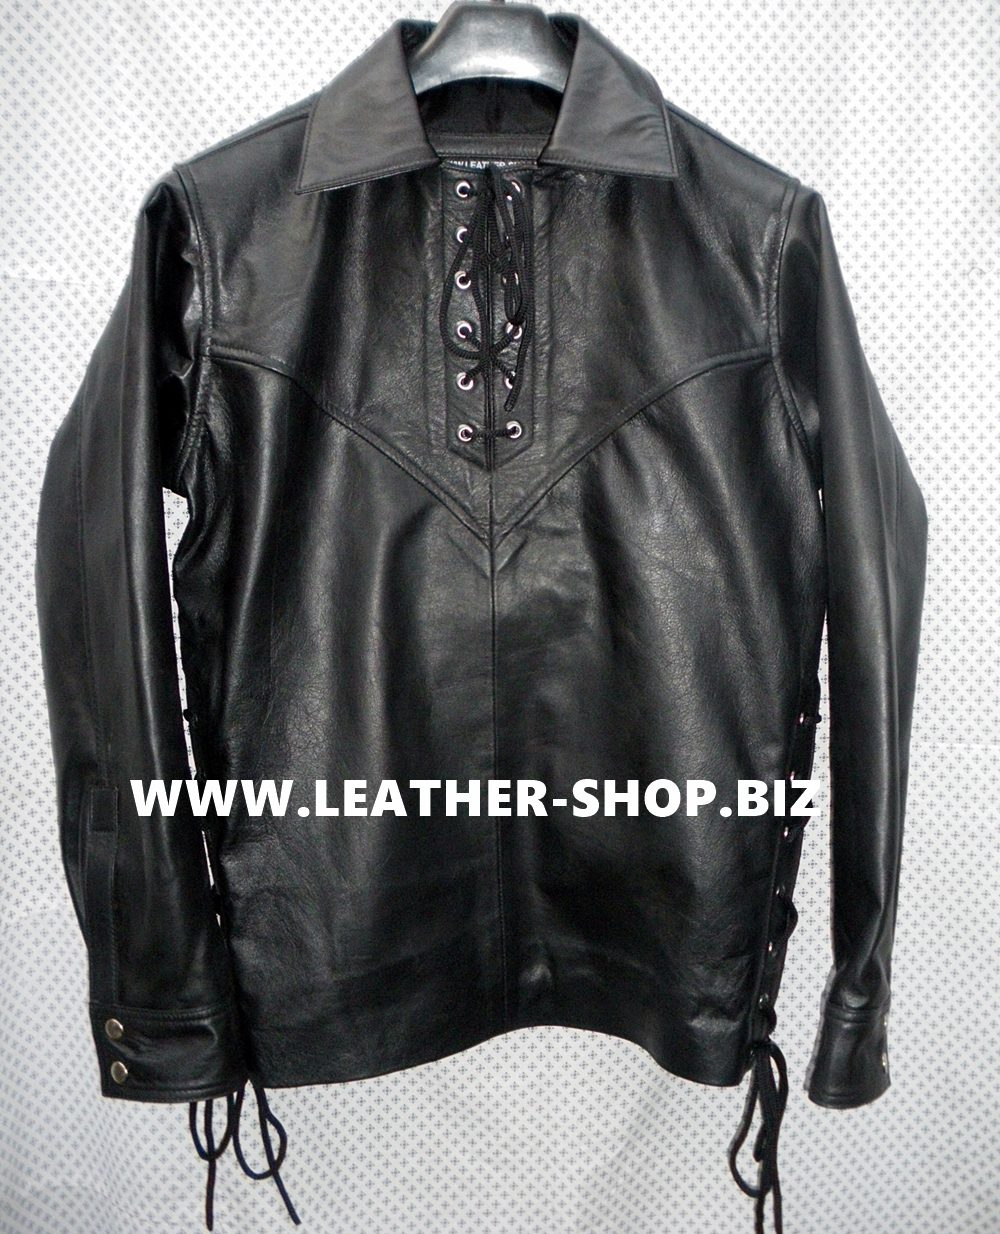 mens-leather-shirt-pullover-style-ls098-with-fringe-www.leather-shop.biz-front-pic.jpg